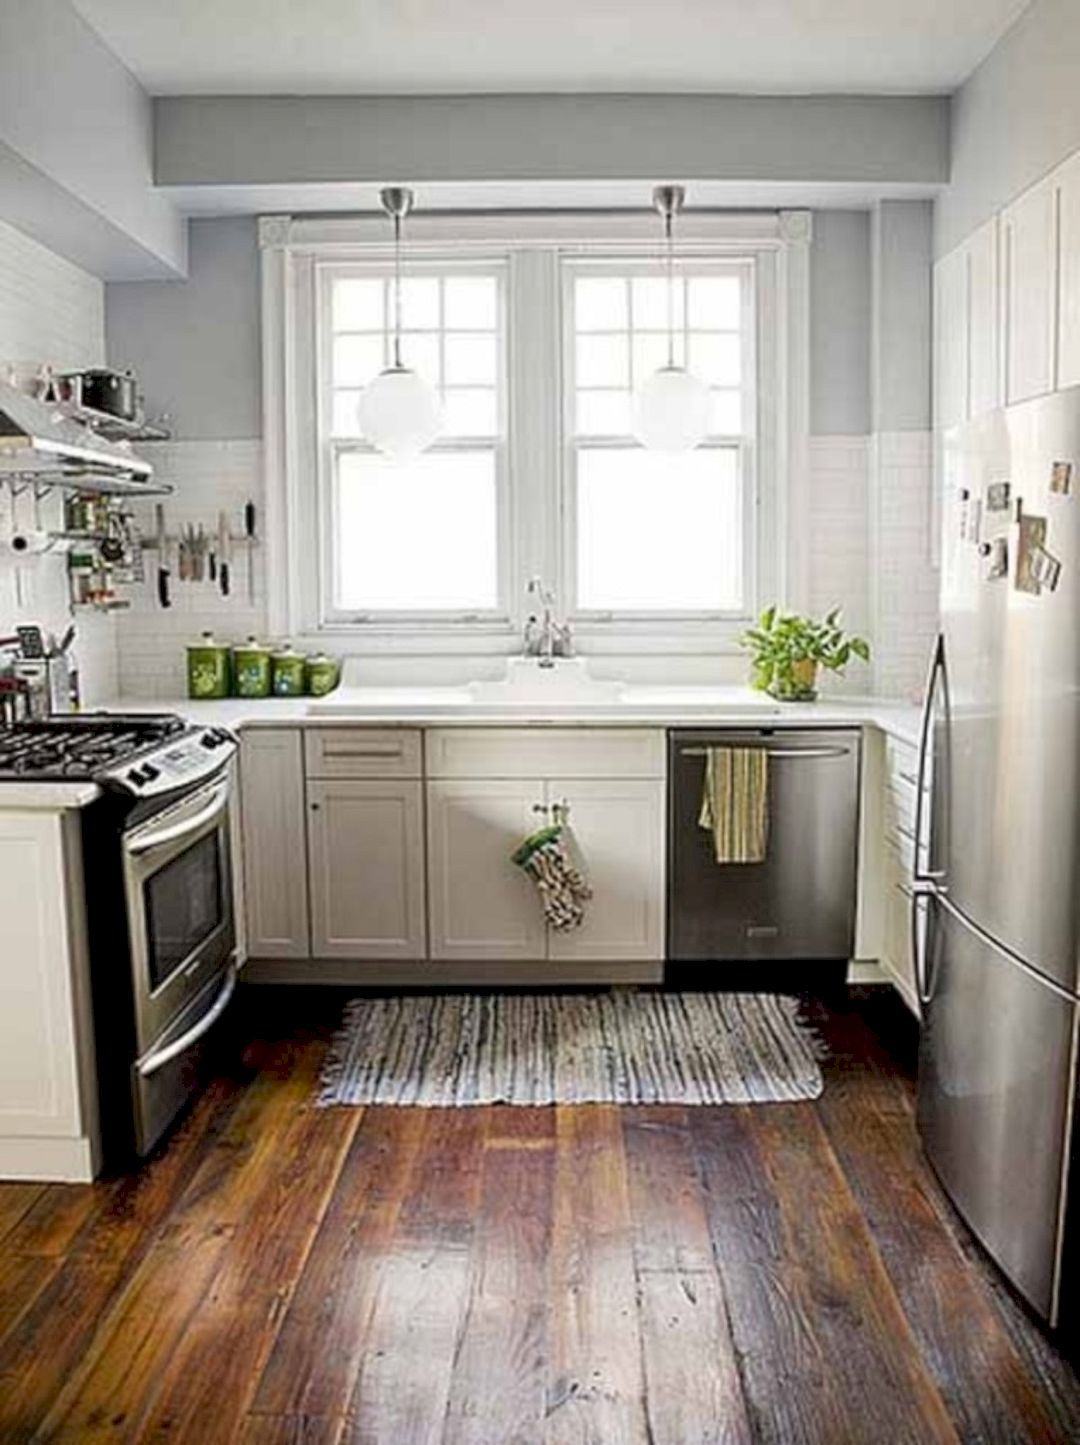 These Kitchen Layouts are Brilliant for Your